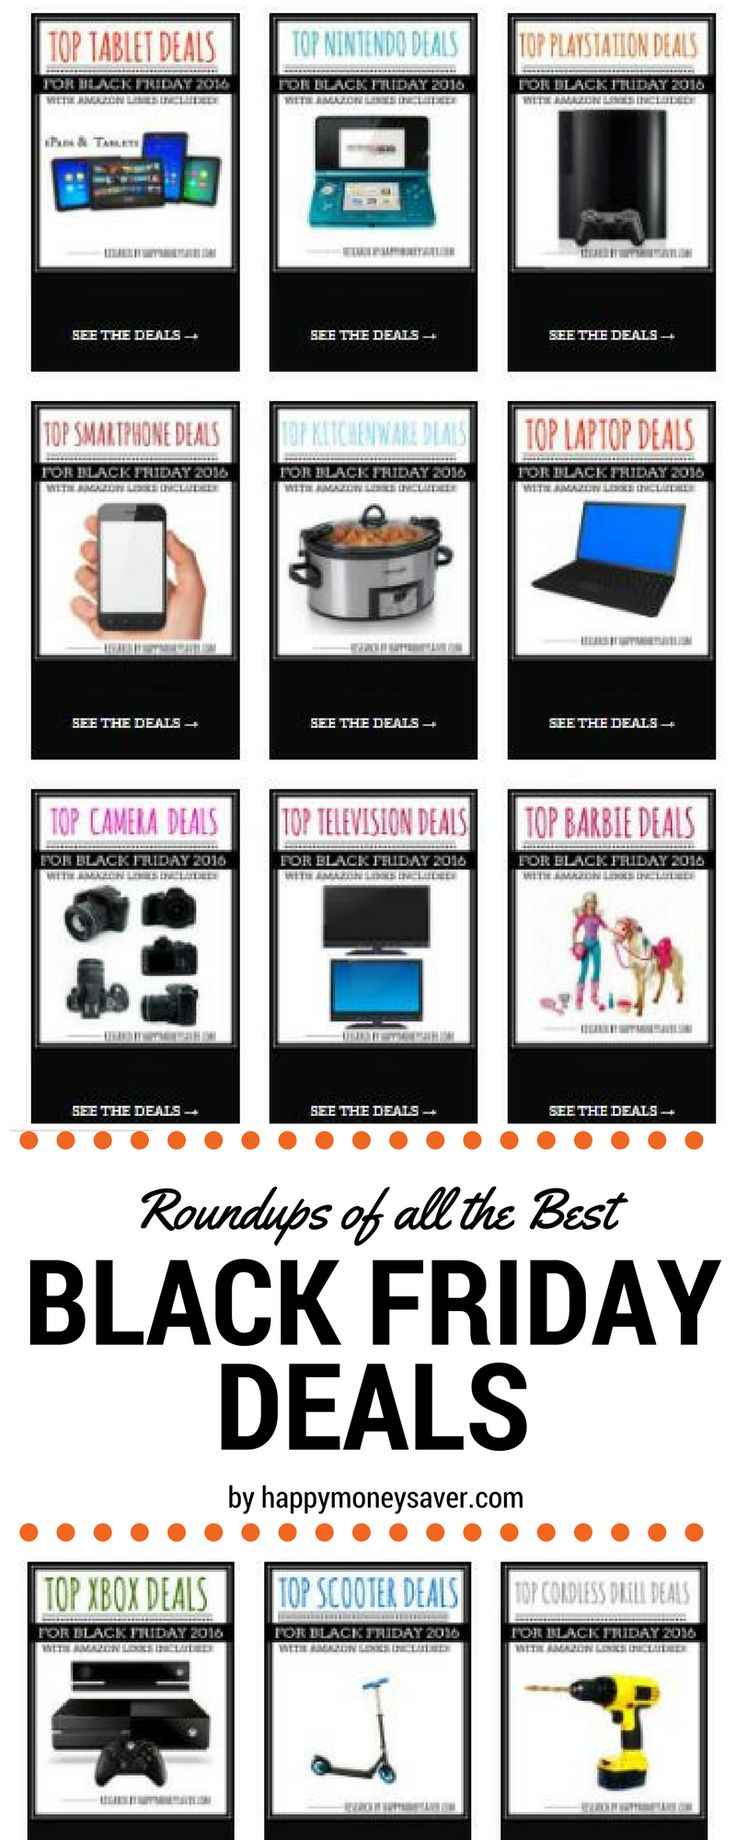 Top Black Friday deals! All the research has been done on all these top Black Friday deals on electronics, laptops, game systems, toys, coats, pajamas and more. You're gonna love this! via @HappyMoneySaver